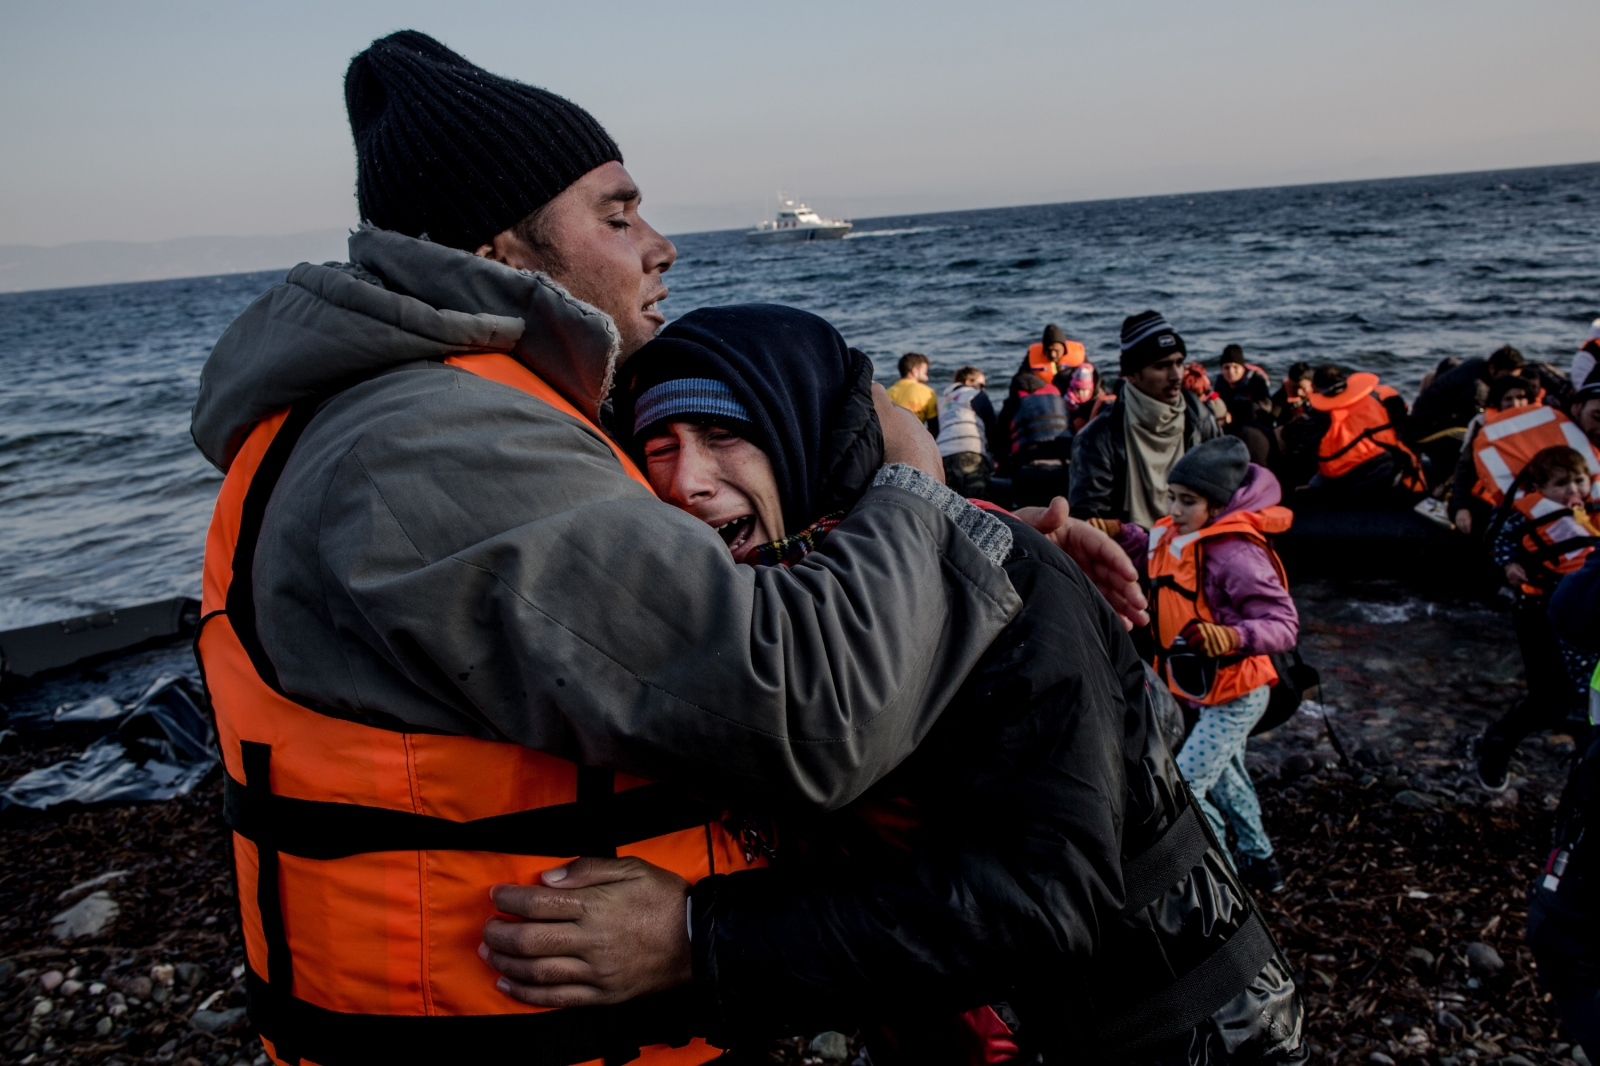 A man comforts his crying son shortly after arriving on the shores of Lesbos, Greece, on November 17, 2015. The roughly 1.5 hour boat ride between Turkey's western coastline and the closest Greek island has cost anywhere between $900-3000 per person. With winter approaching, the weather also becomes more unpredictable, causing further confusion and fear for refugees fleeing conflict.